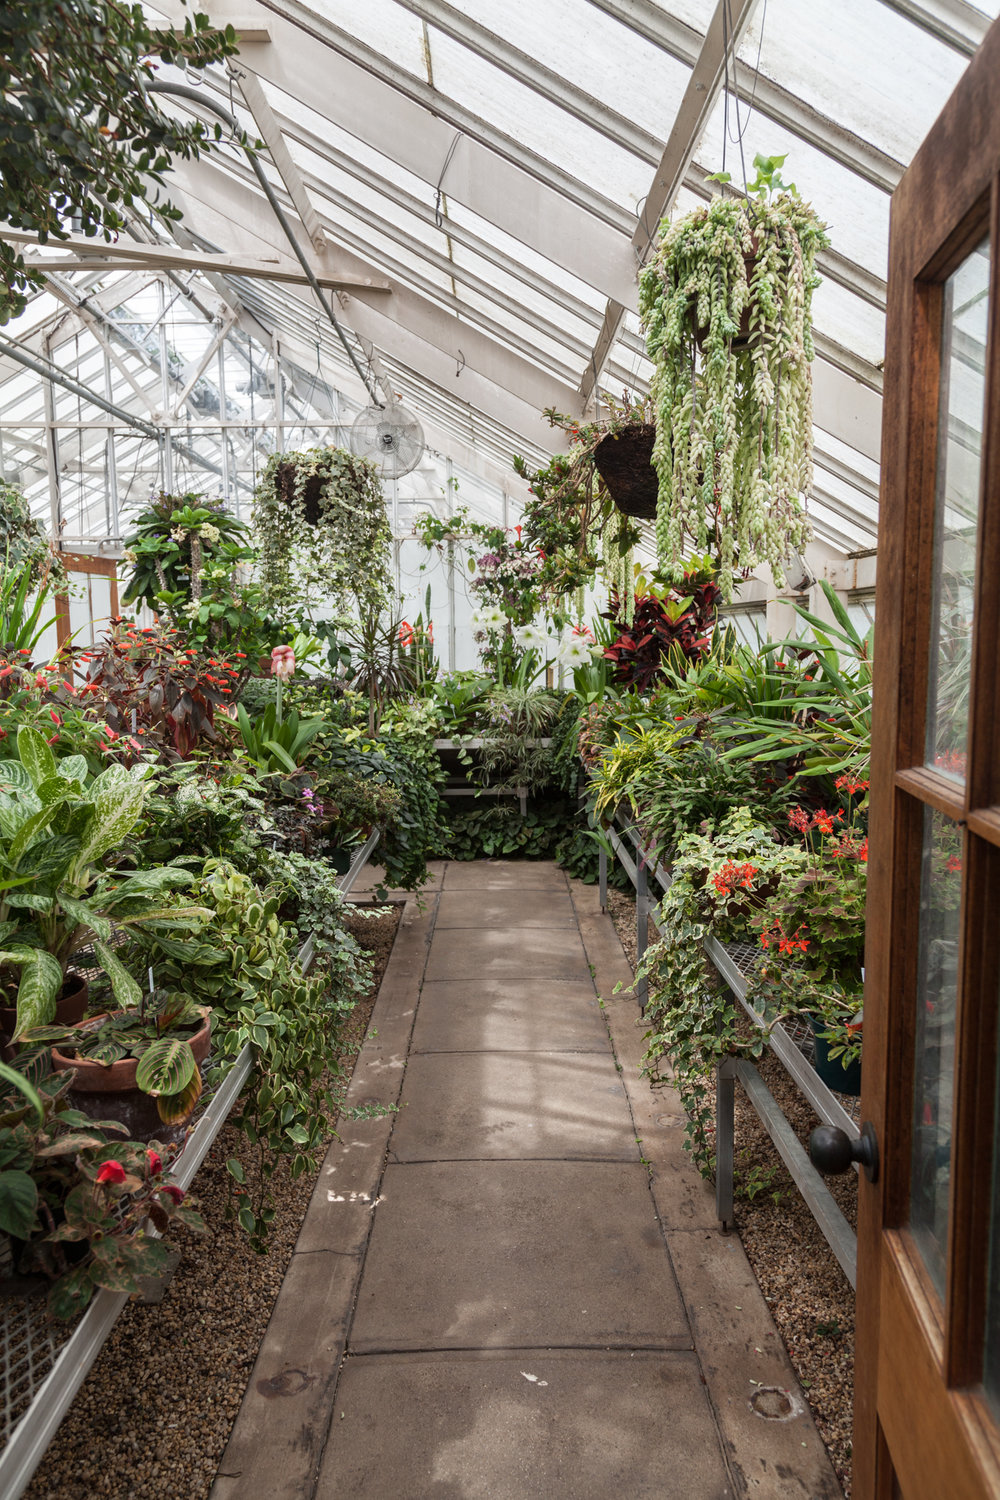 Many familiar species abound: Maranta, Burro's Tail, Begonia, Dieffenbachia, Croton and more.